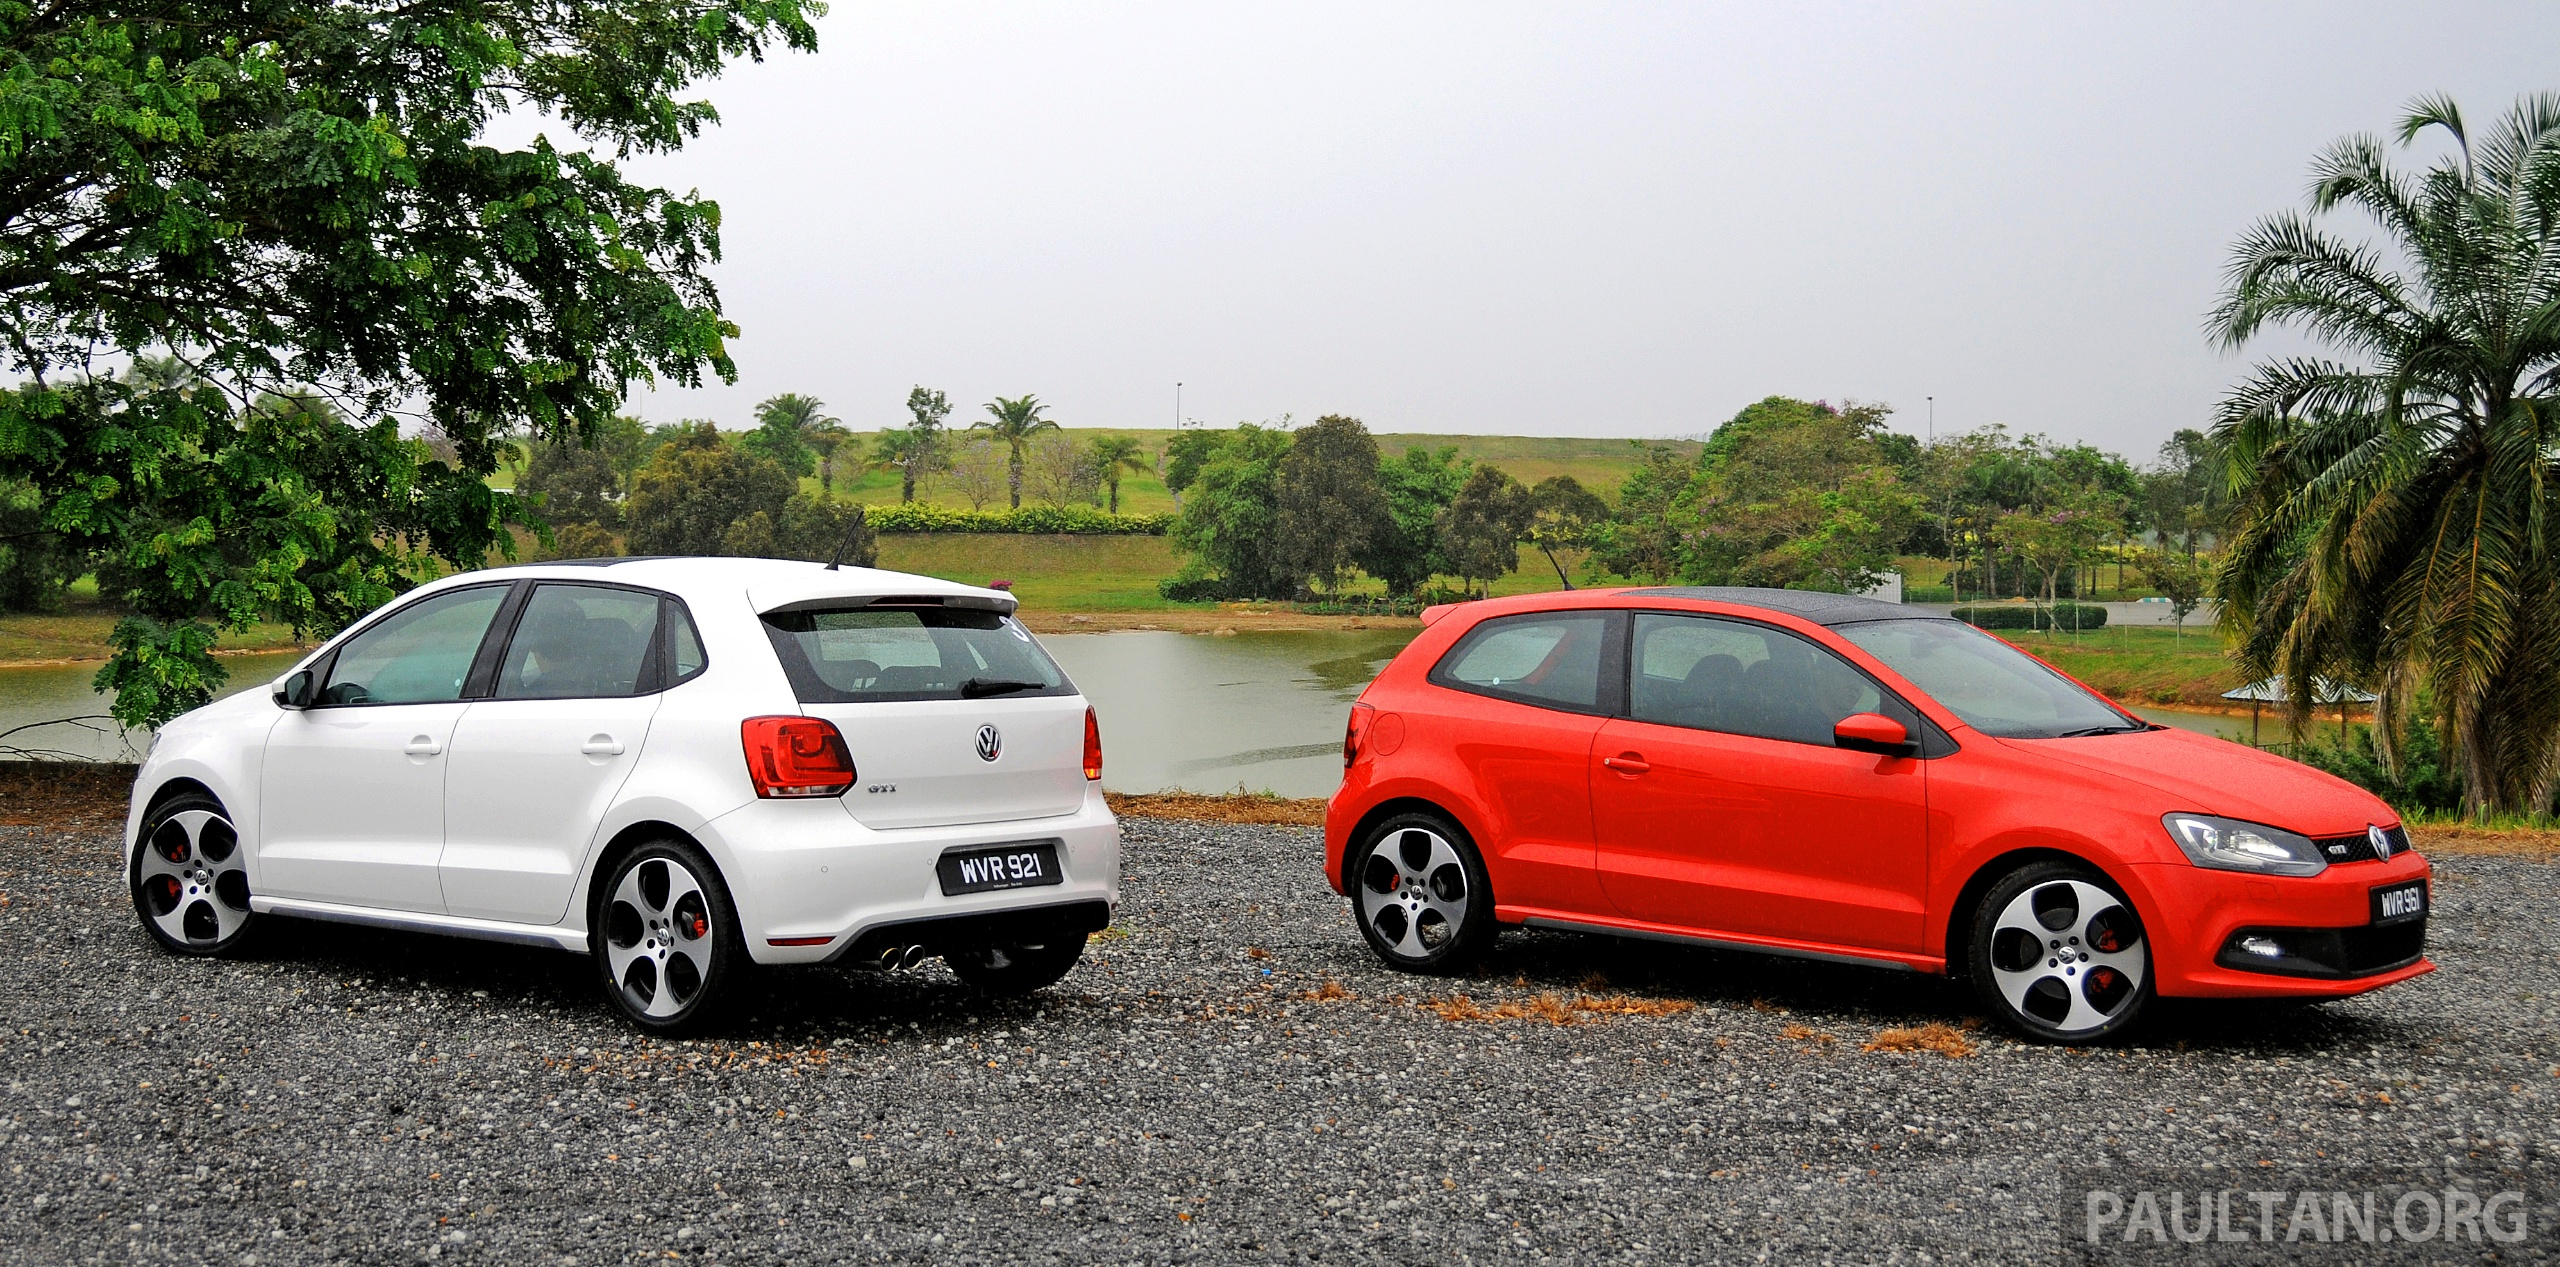 2015 Vw Polo Gti To Get More Power Manual Option Image 225246